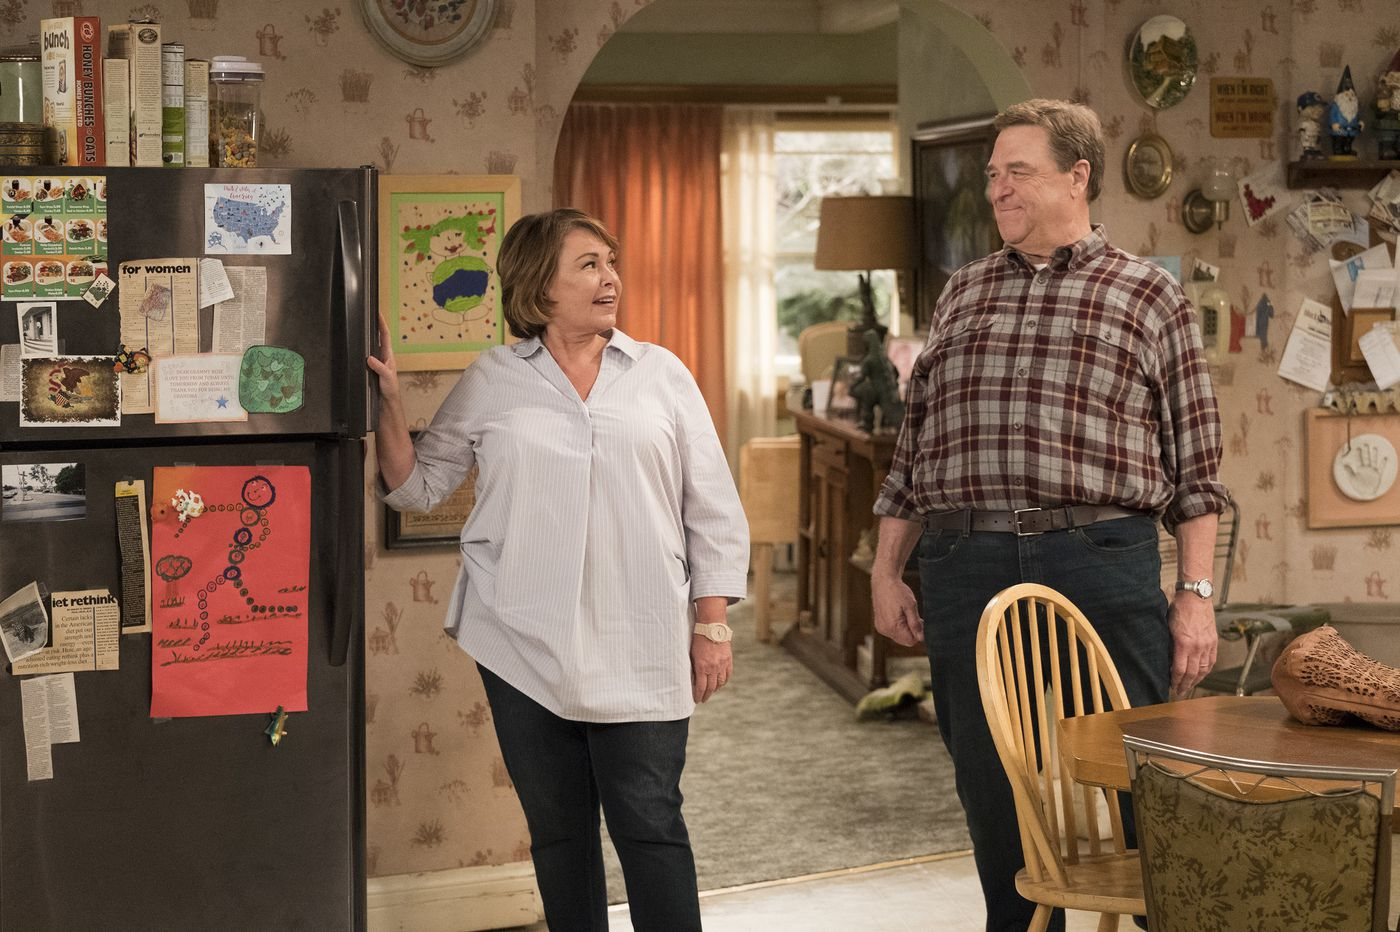 Will 'Roseanne' fans show up for a Barr-free 'The Conners'?